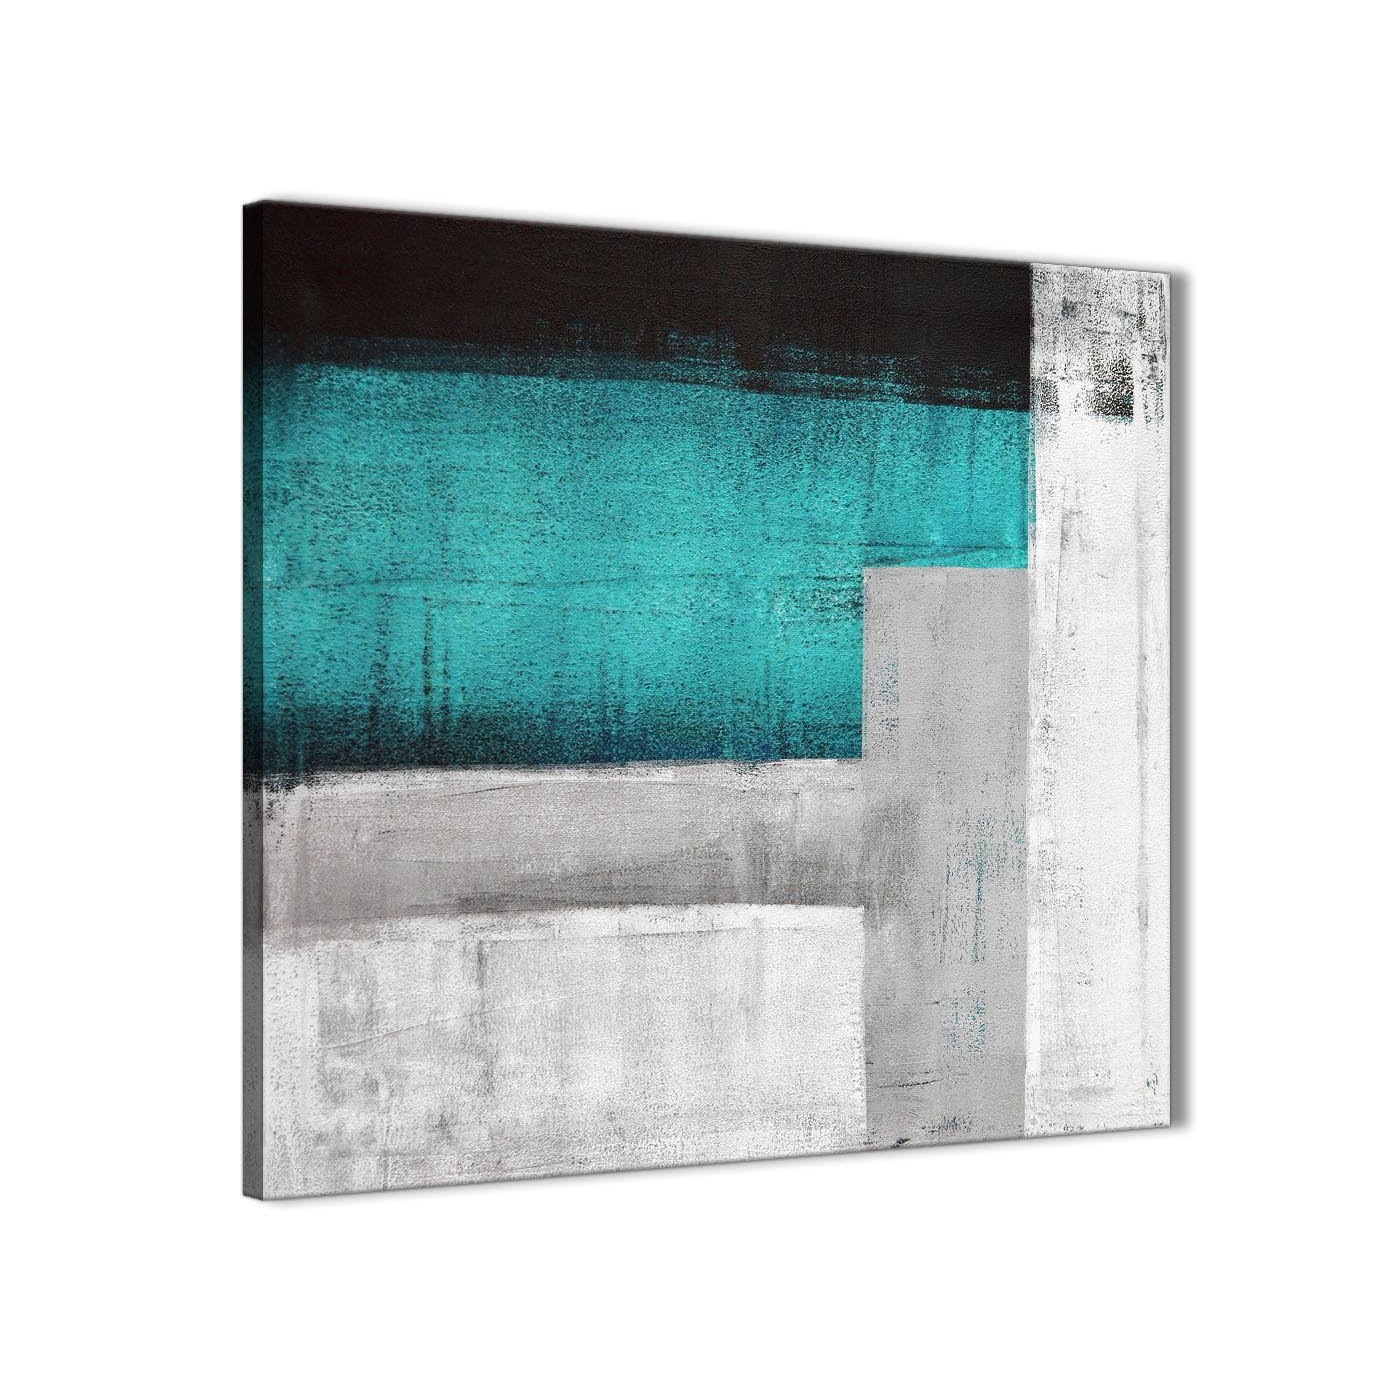 Display gallery item 3 cheap teal turquoise grey painting kitchen canvas pictures accessories abstract 1s429s 49cm square print display gallery item 4